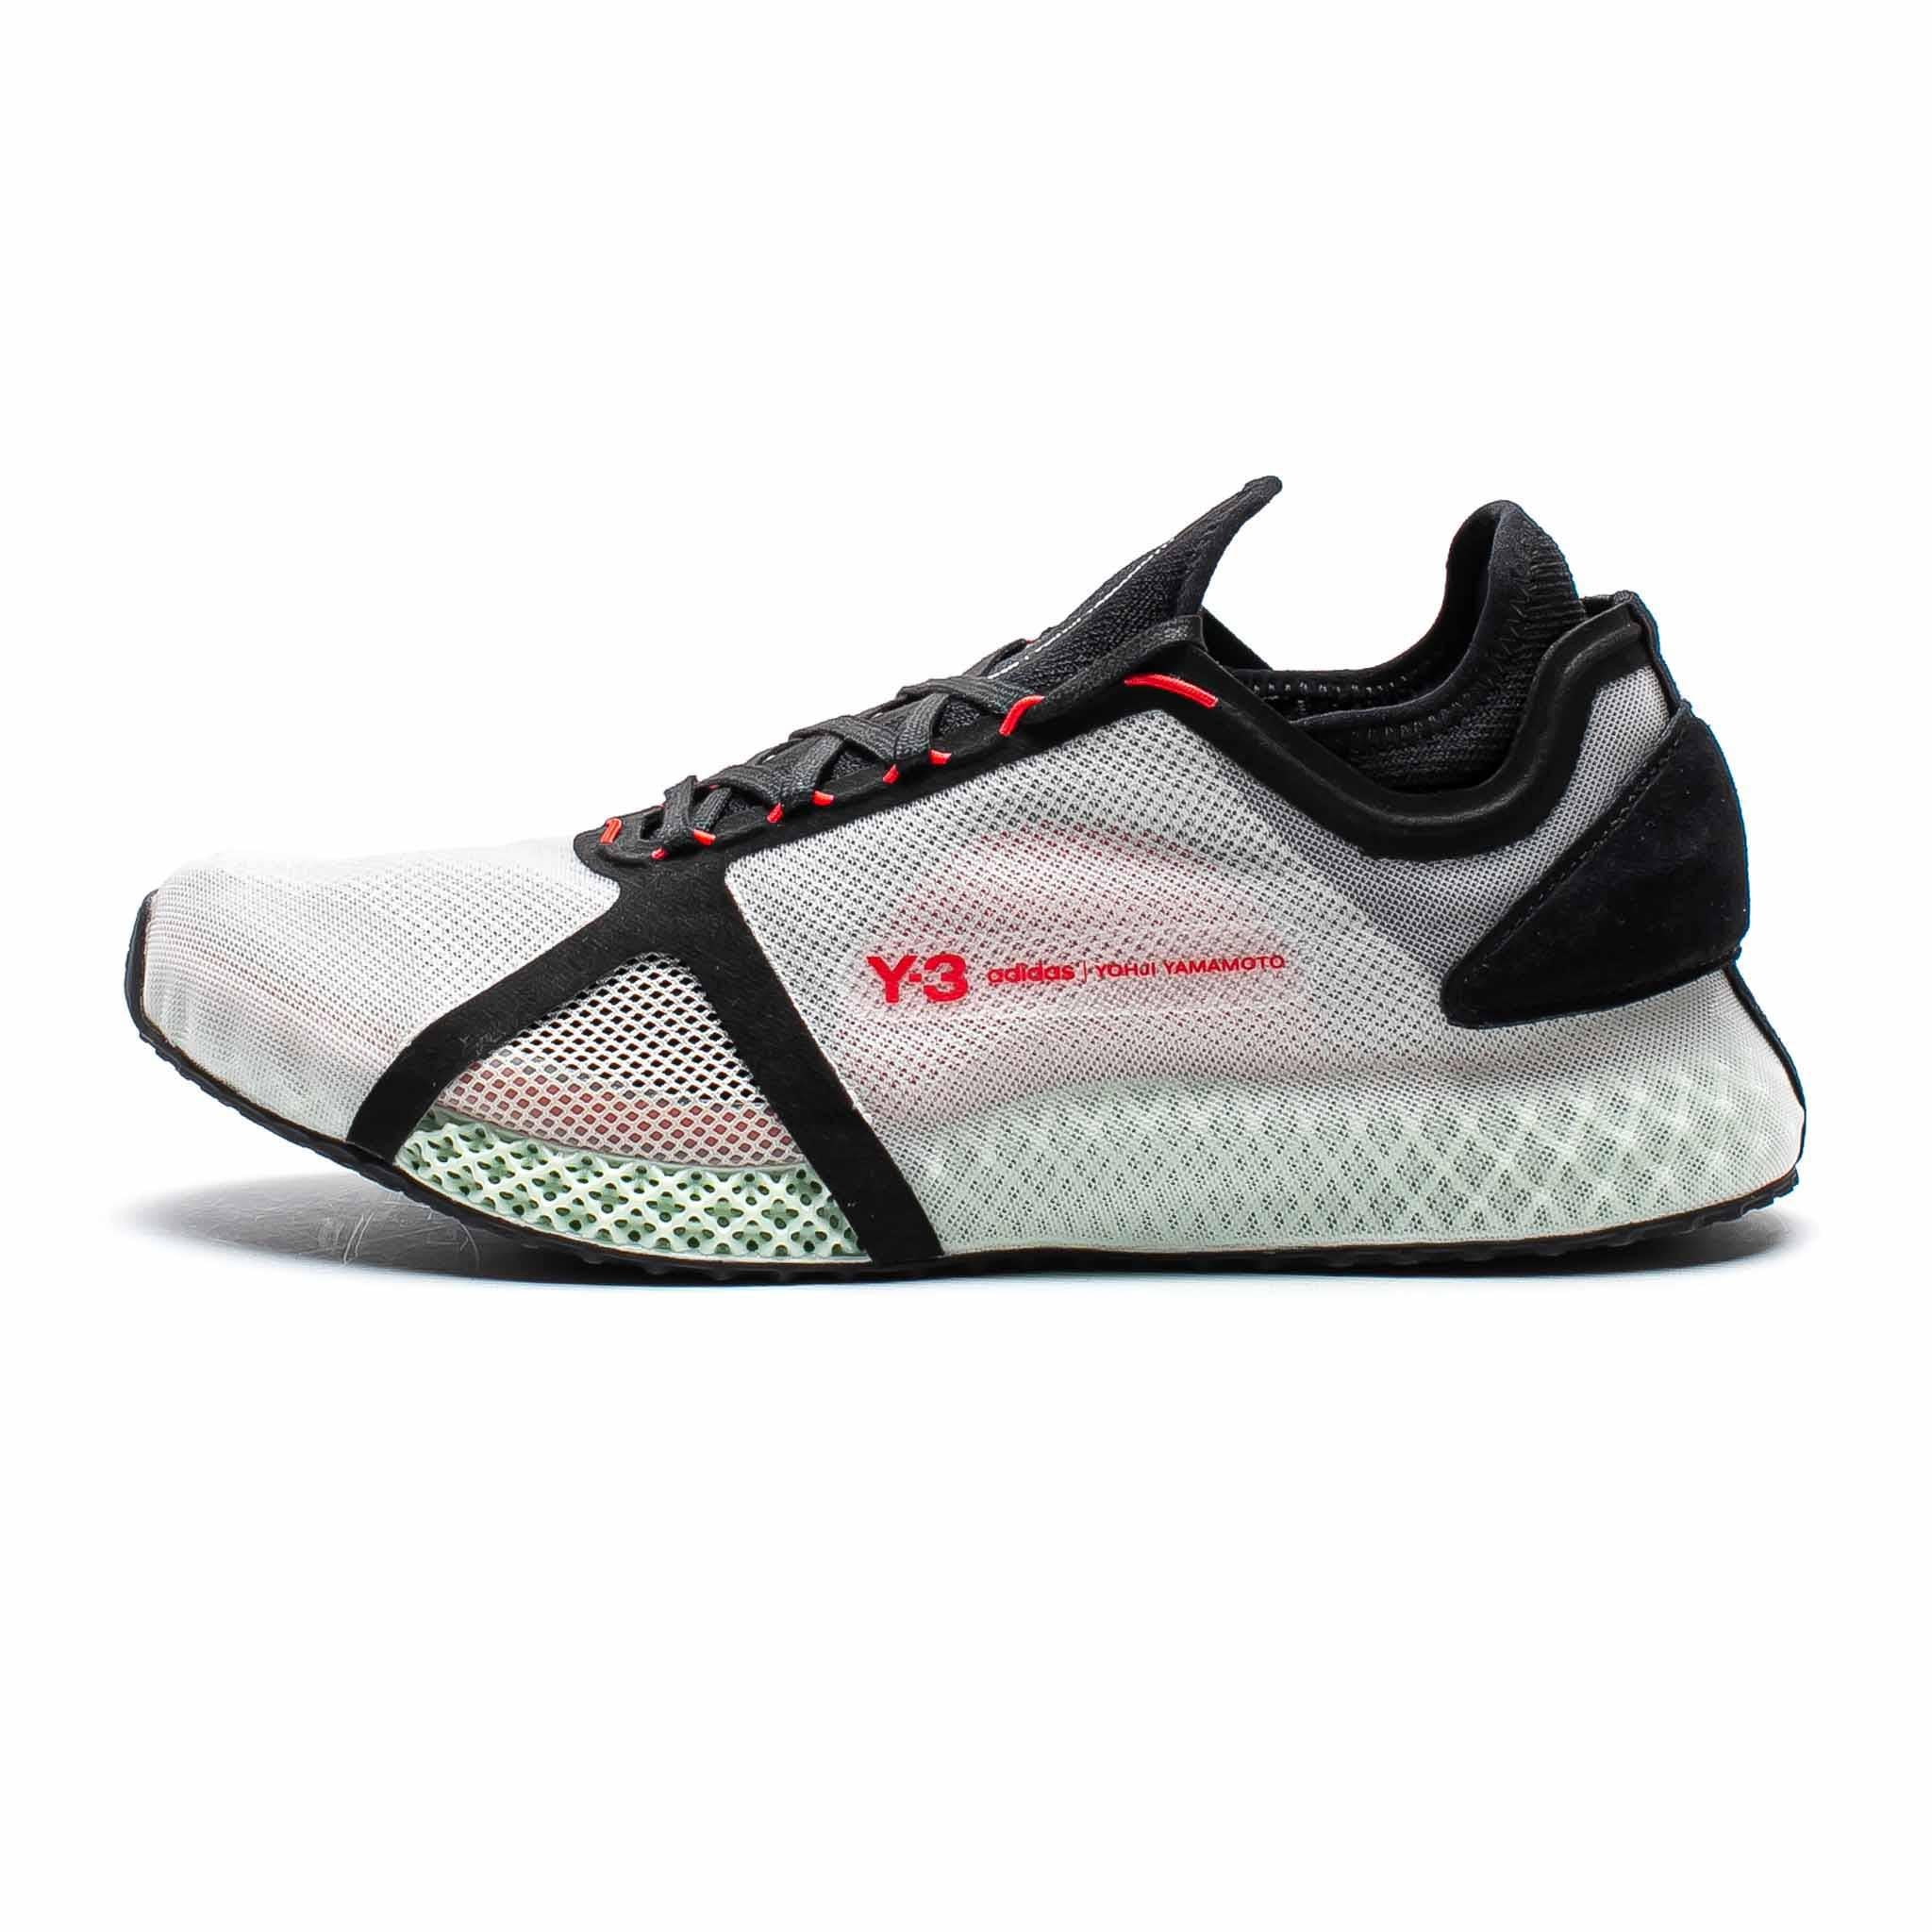 ADIDAS Y-3 Runner 4D IO Bliss